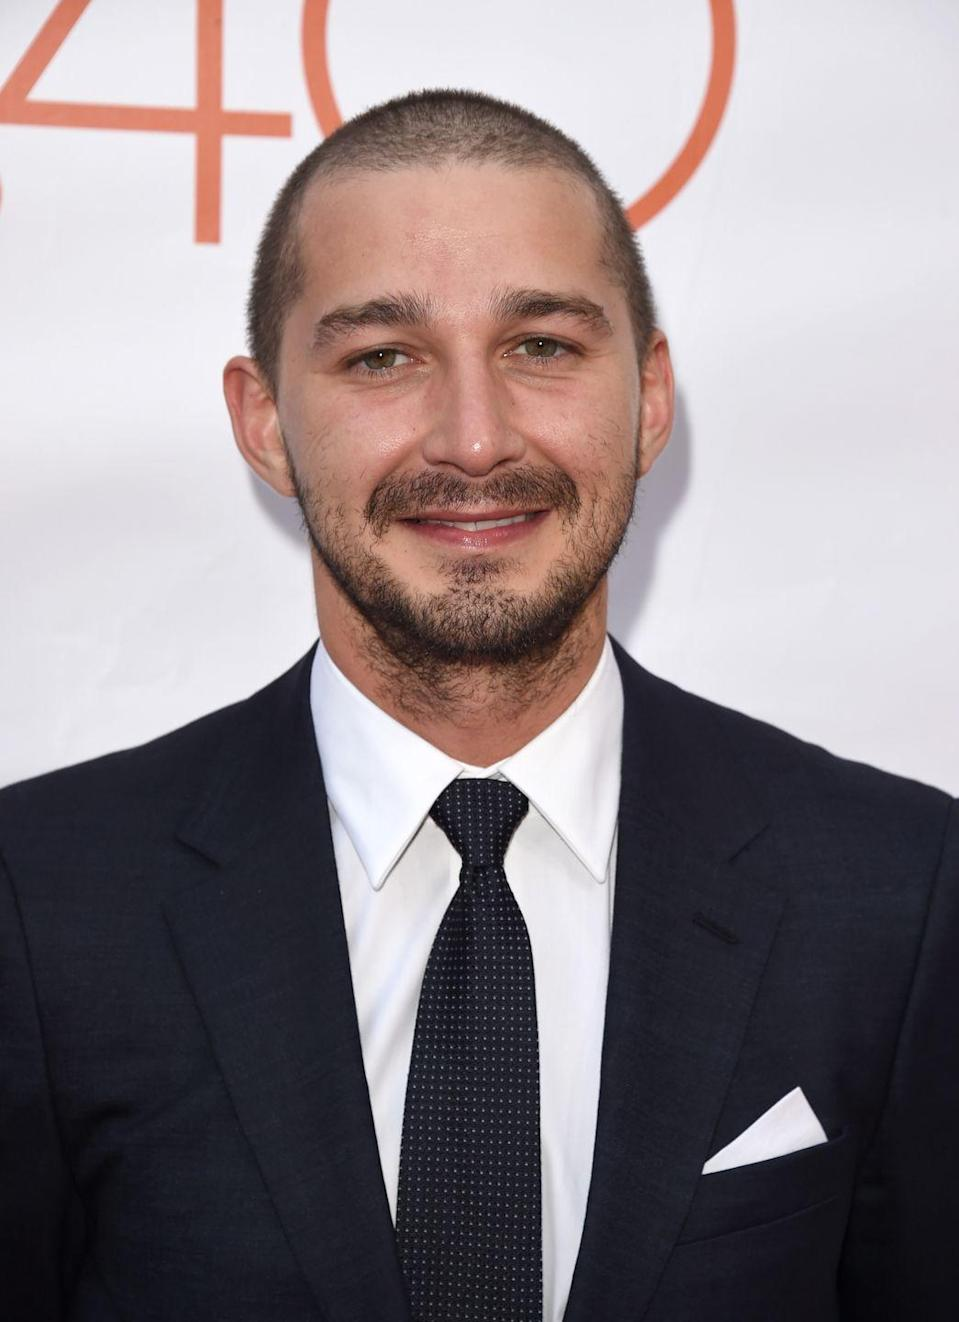 "<p>LaBeouf <a href=""http://www.smh.com.au/lifestyle/celebrity/shia-labeouf-i-hate-transformers-20100405-rmr6.html"" rel=""nofollow noopener"" target=""_blank"" data-ylk=""slk:admits"" class=""link rapid-noclick-resp"">admits</a>, ""I wasn't impressed with what we did...there were some really wild stunts in it, but the heart was gone. It's just a bunch of fighting robots."" He also <a href=""http://www.hollywoodreporter.com/news/shia-labeouf-explains-transformers-nap-841140"" rel=""nofollow noopener"" target=""_blank"" data-ylk=""slk:took a nap"" class=""link rapid-noclick-resp"">took a nap</a> during the screening. </p>"